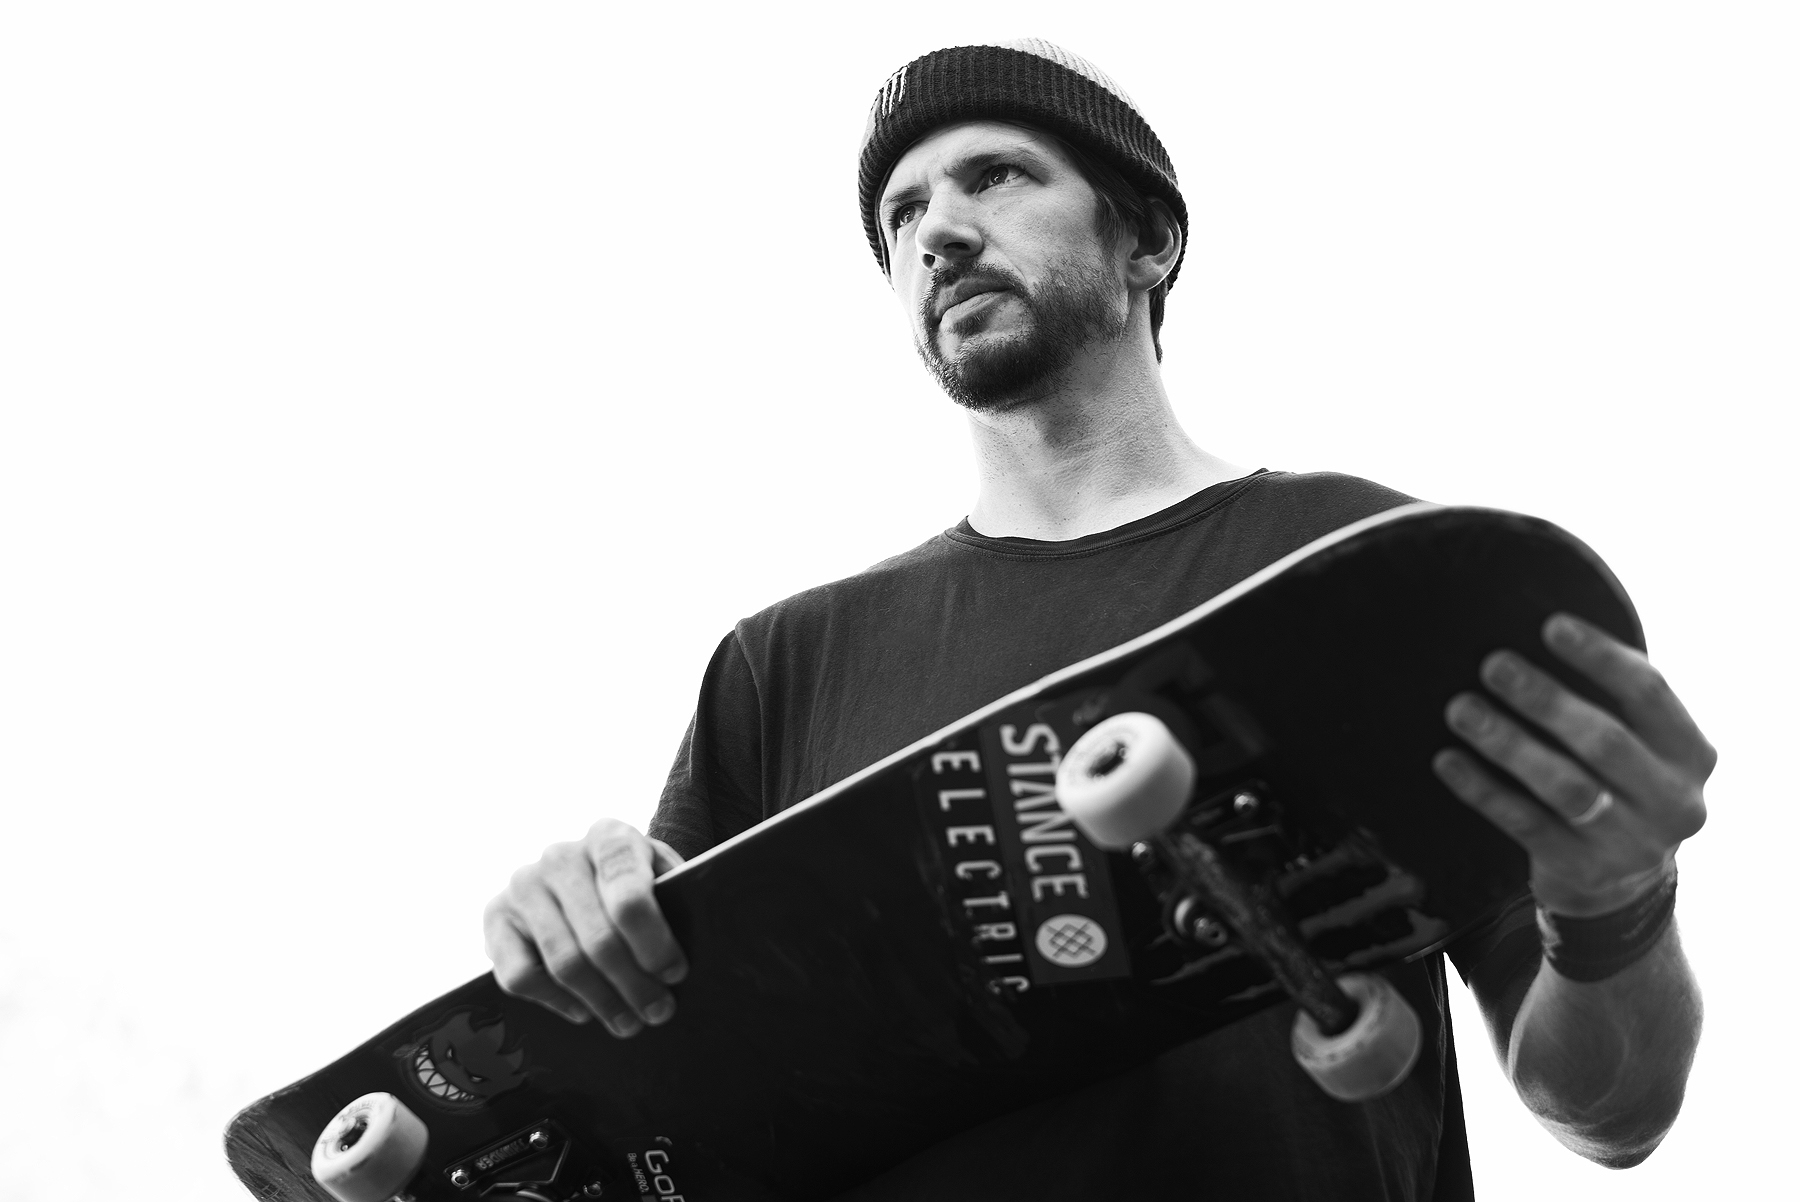 Chris Cole on $1 Million Skateboarding Bounties and Brawling